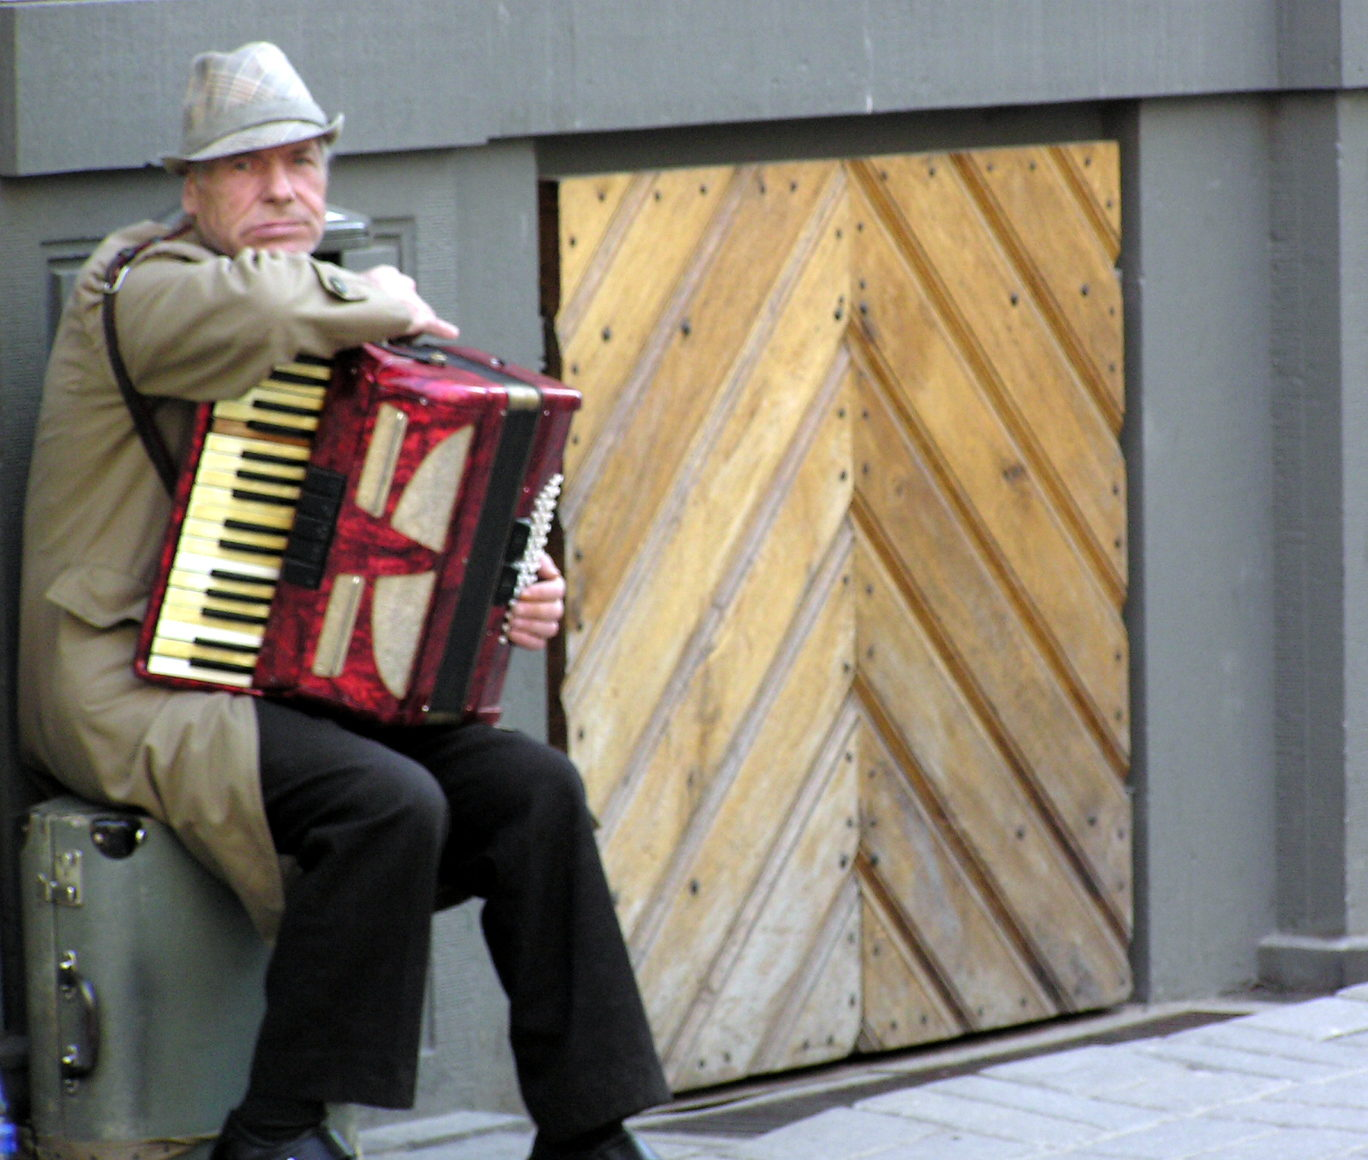 Man with accordion